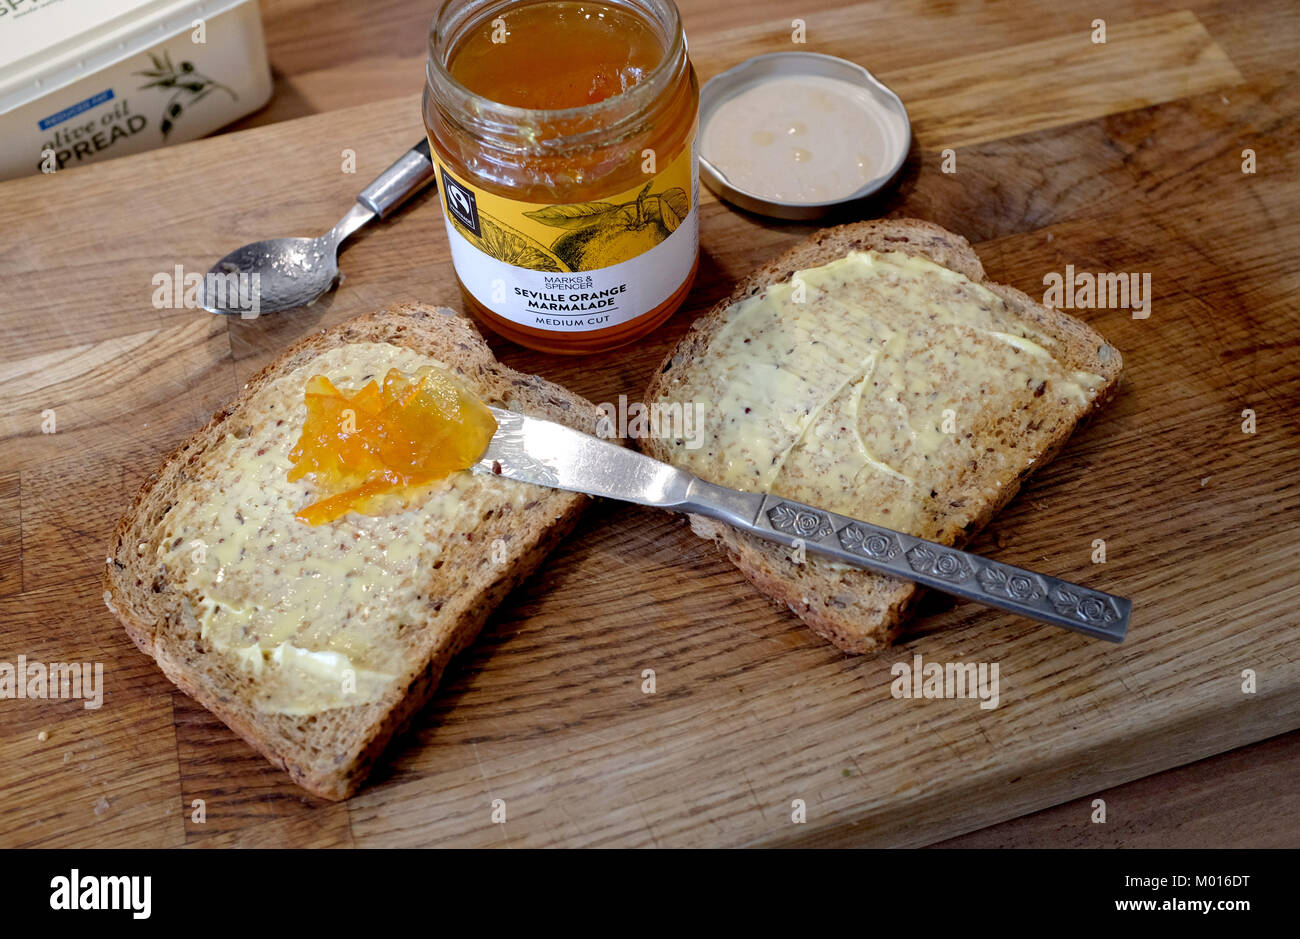 Wholemeal brown toast with M&S Seville Orange Marmalade - Stock Image